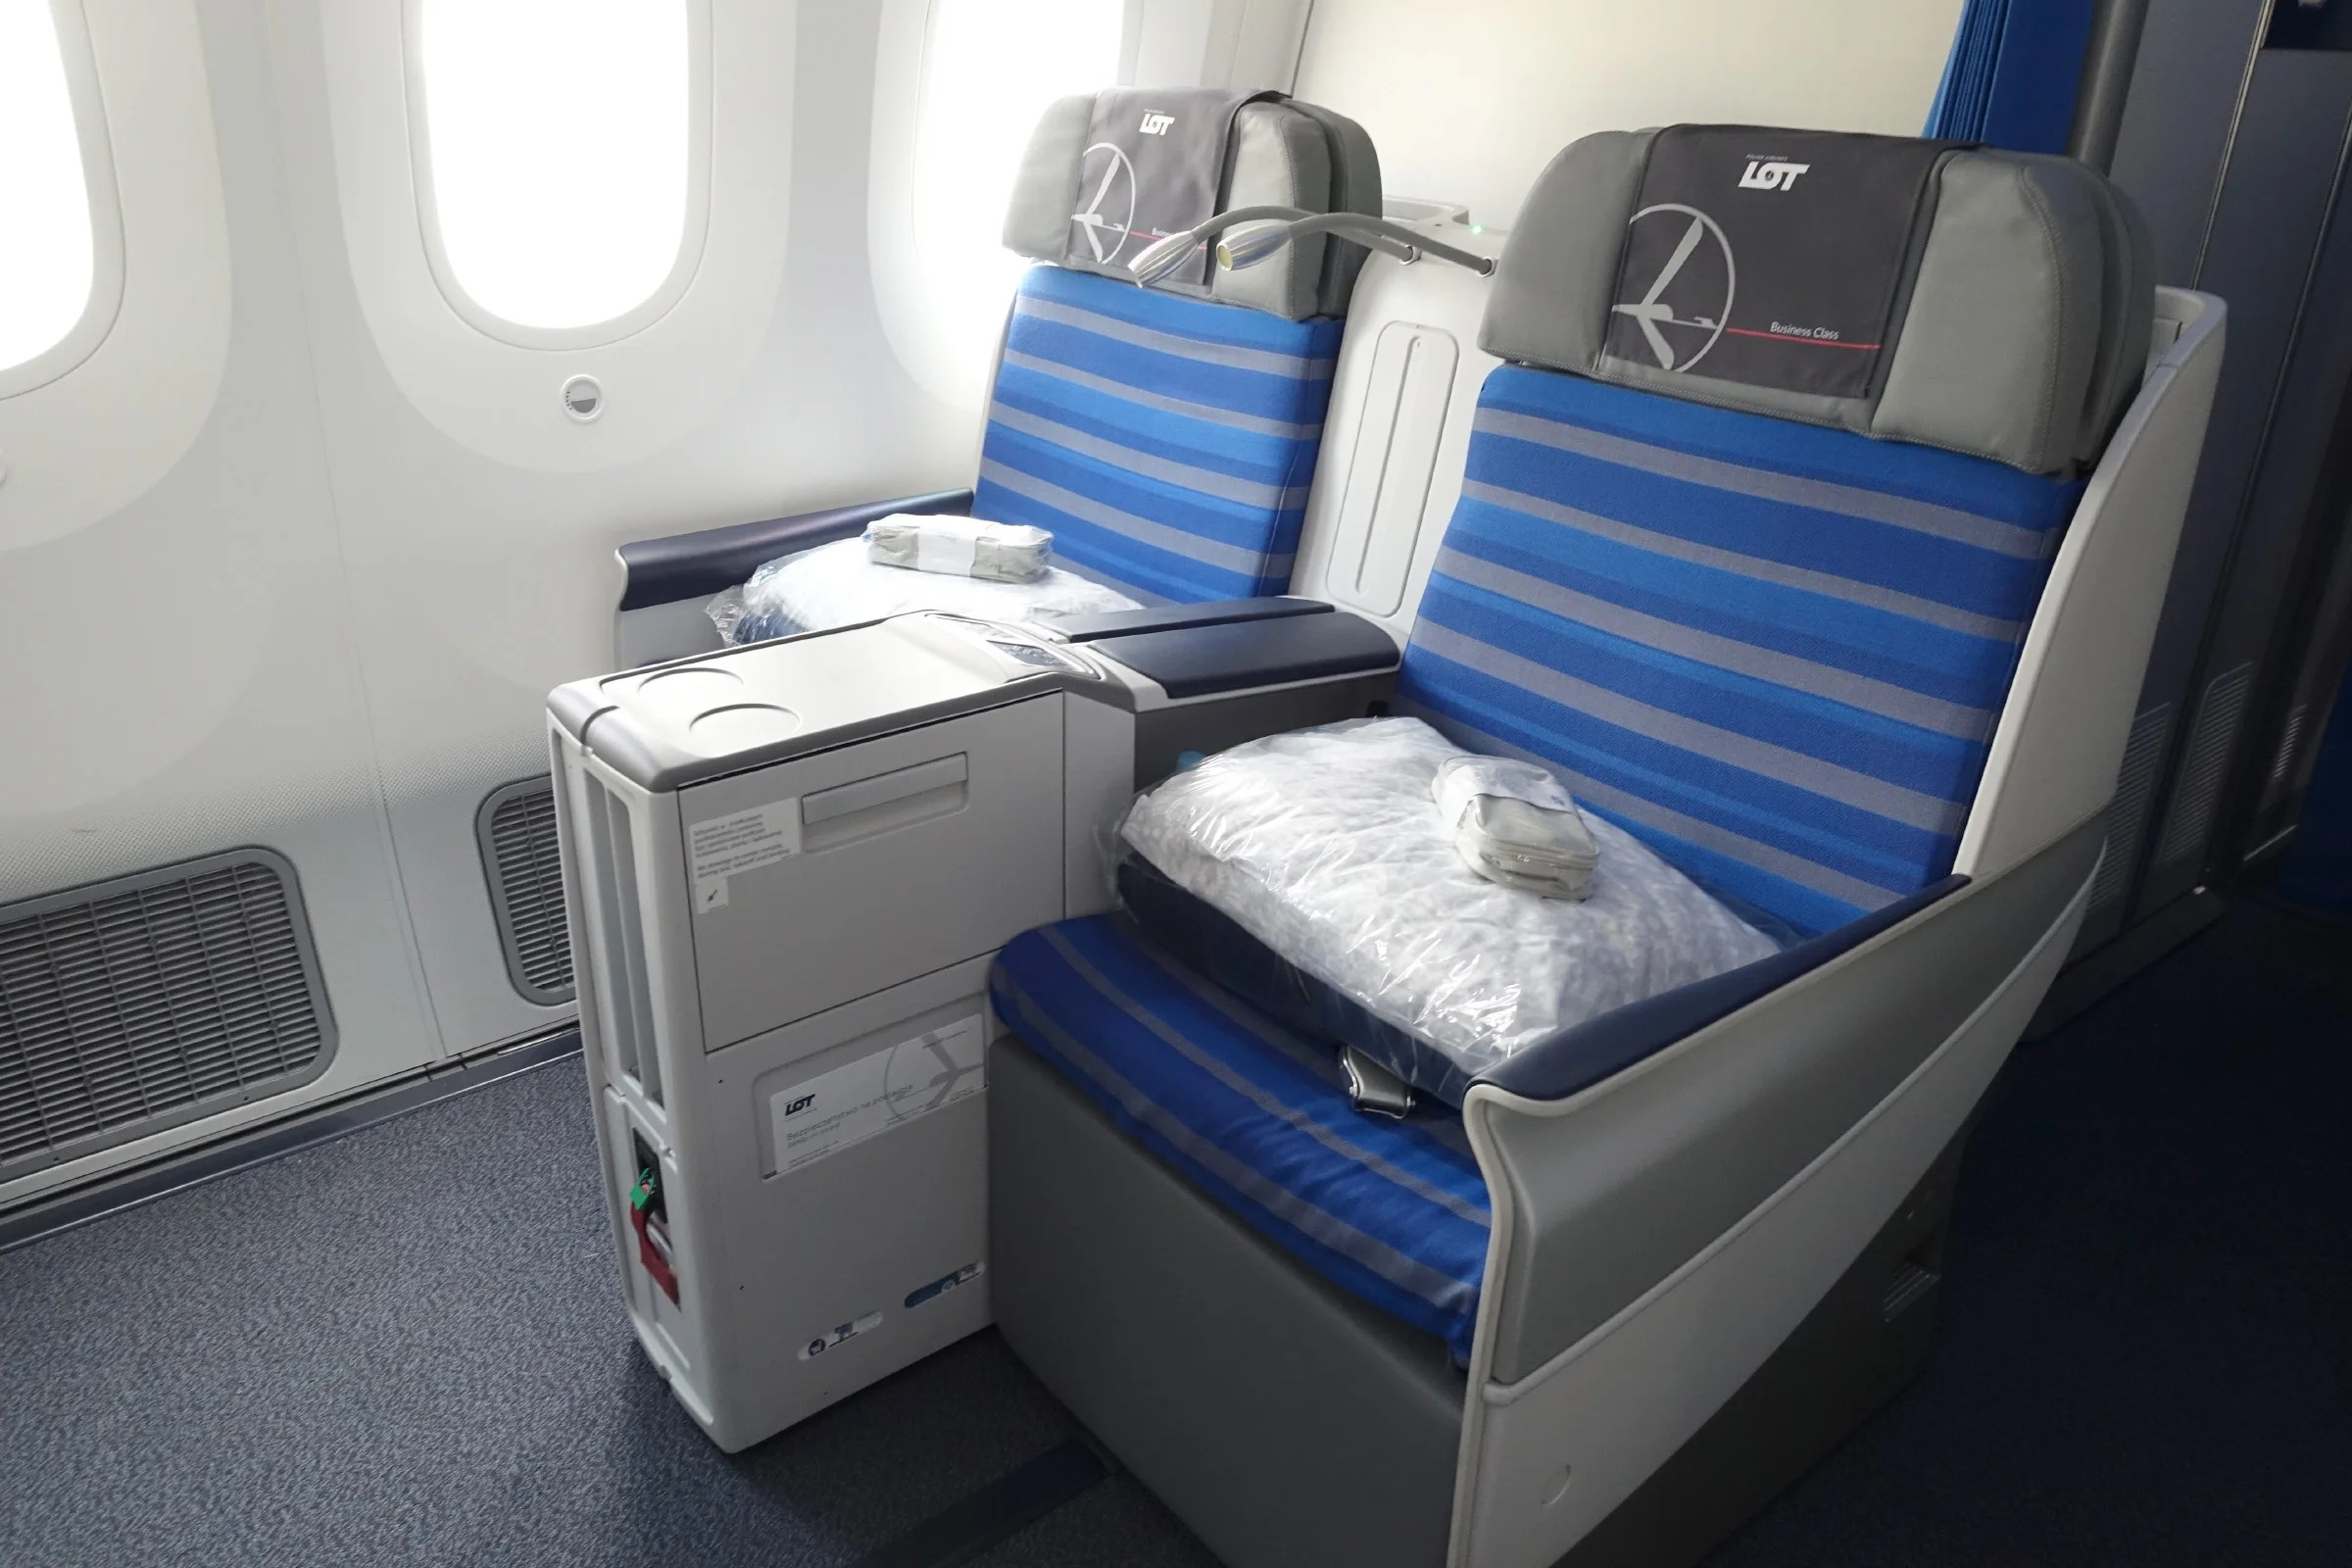 lot 787 business class review